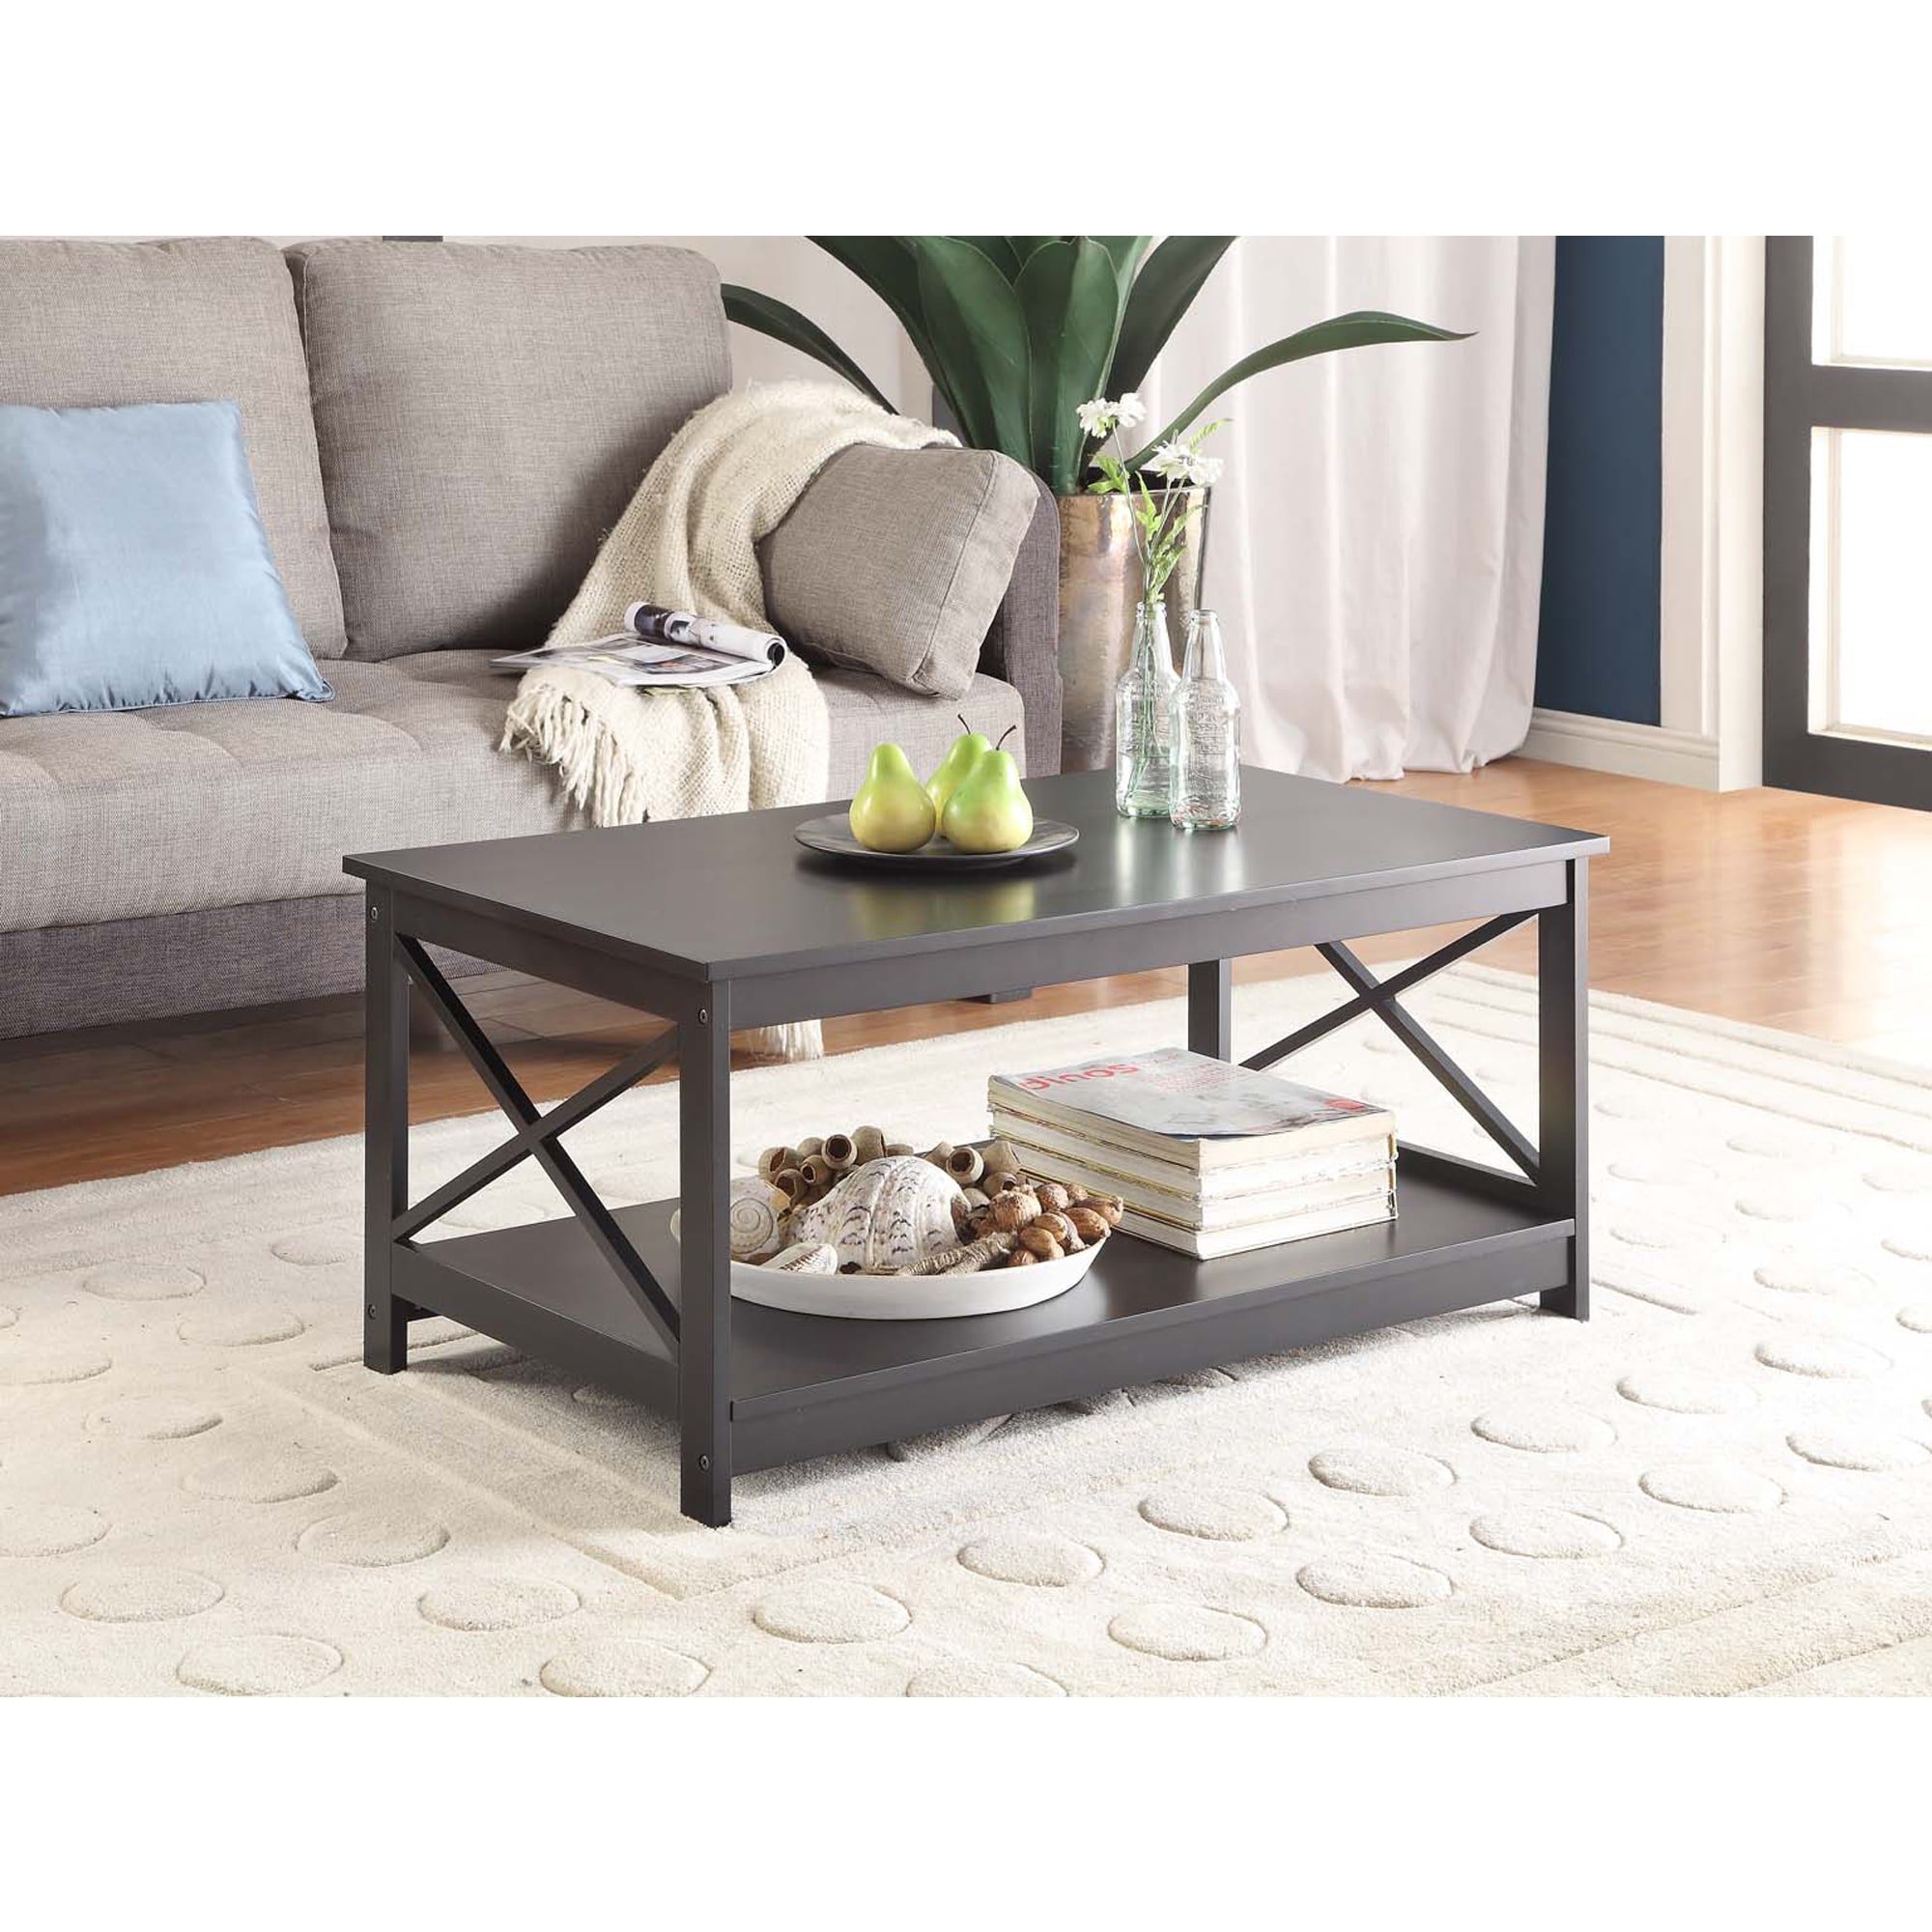 Bywater dauphine coffee table free shipping on orders over 45 bywater dauphine coffee table geotapseo Images